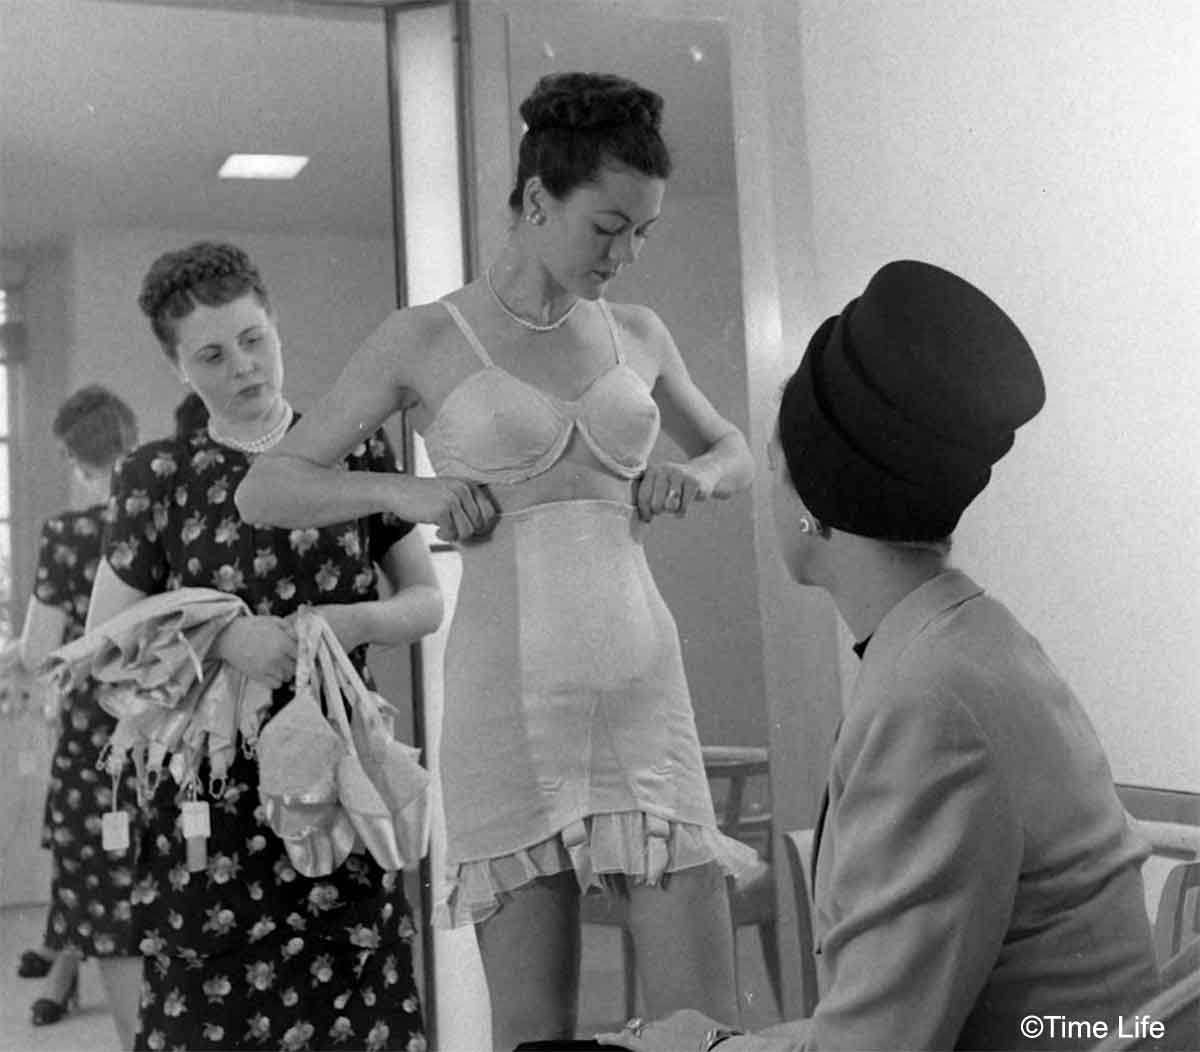 Neiman-Marcus---The-1940s-US-Fashion-Store10